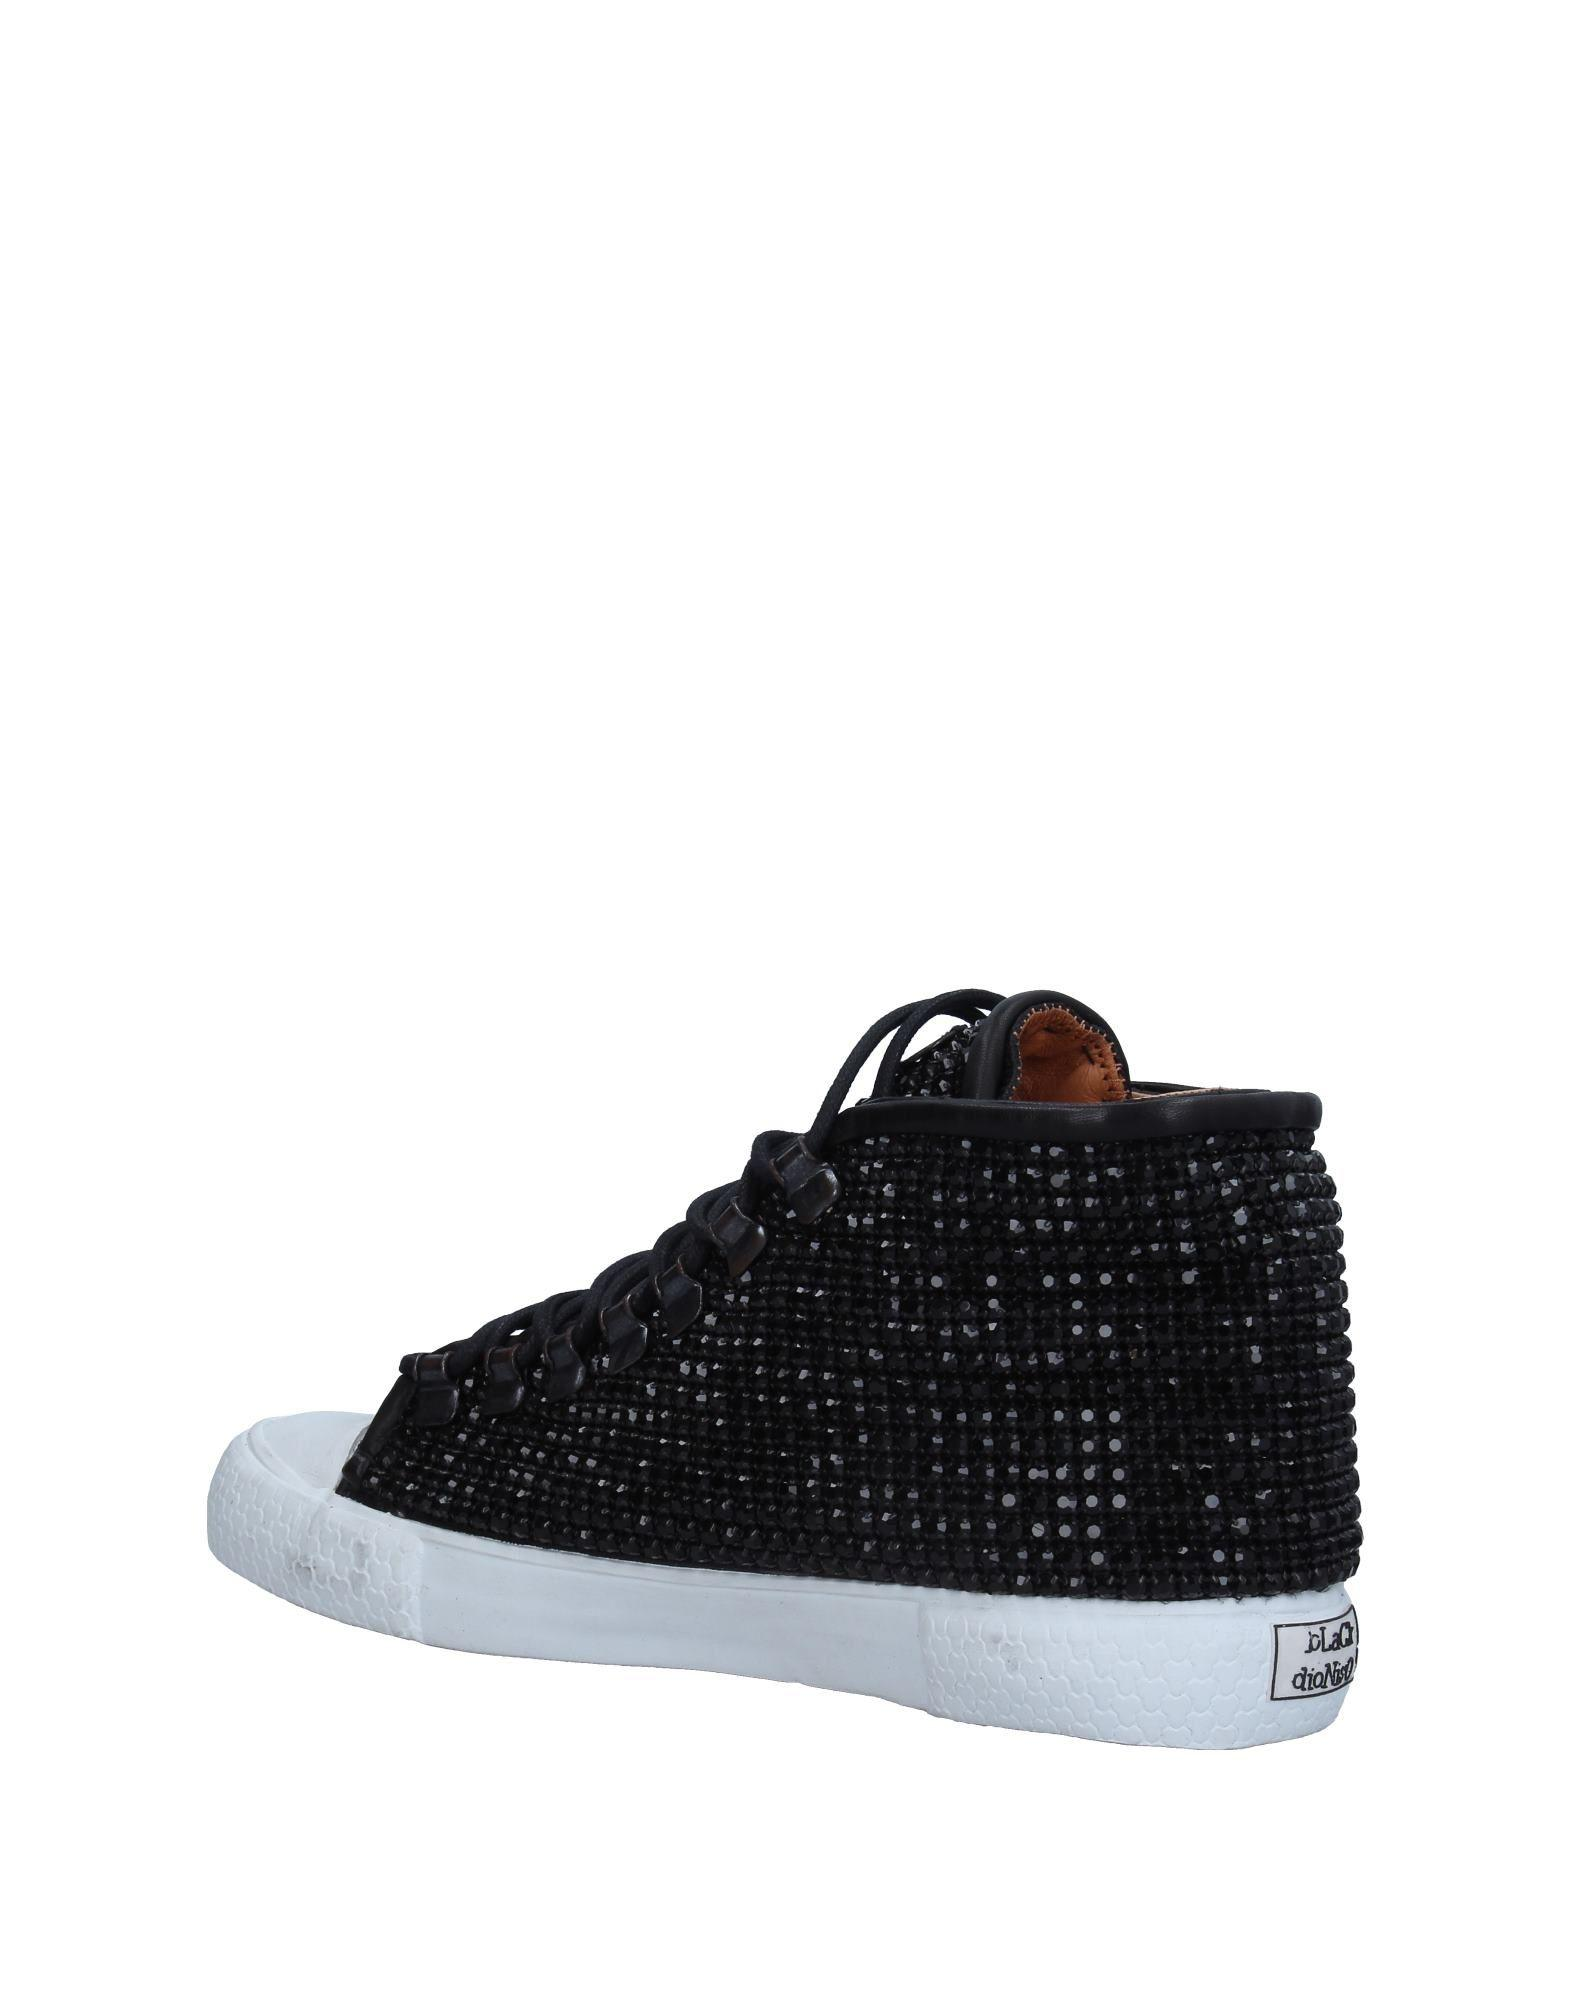 Black Dioniso Leather High-tops & Sneakers in Black